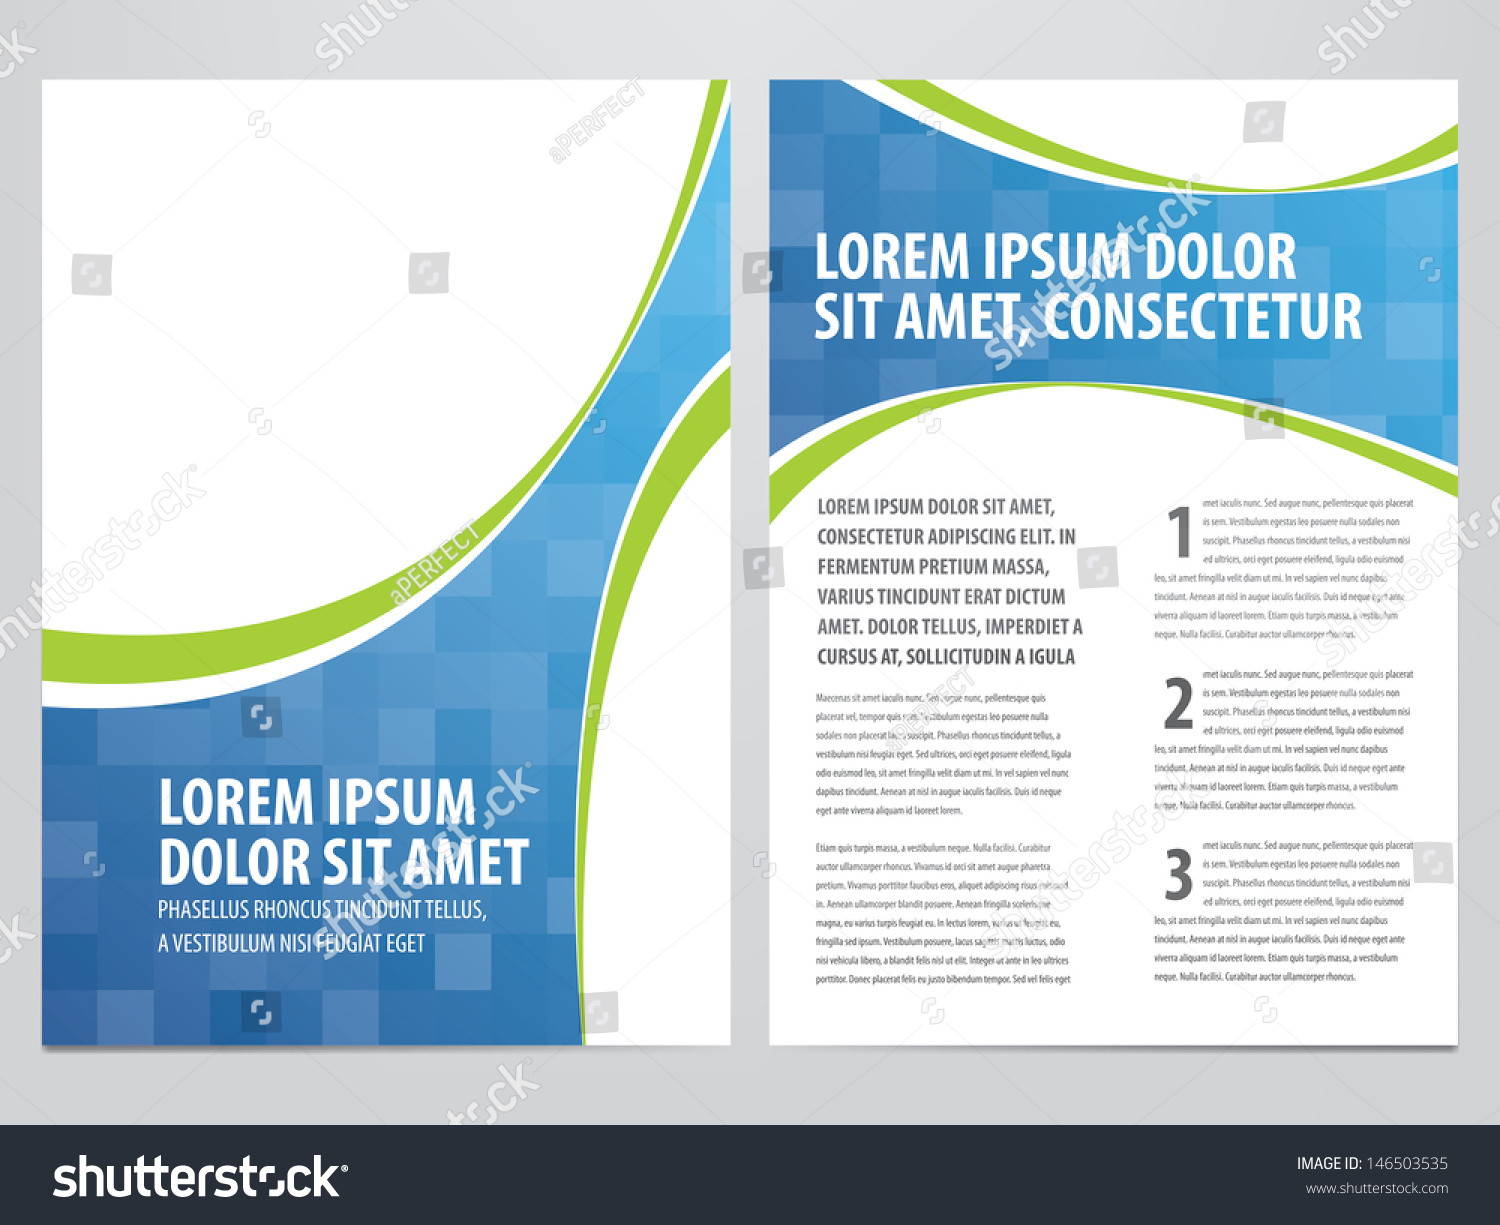 templates for flyers and brochures - vector business brochure flyer template 146503535